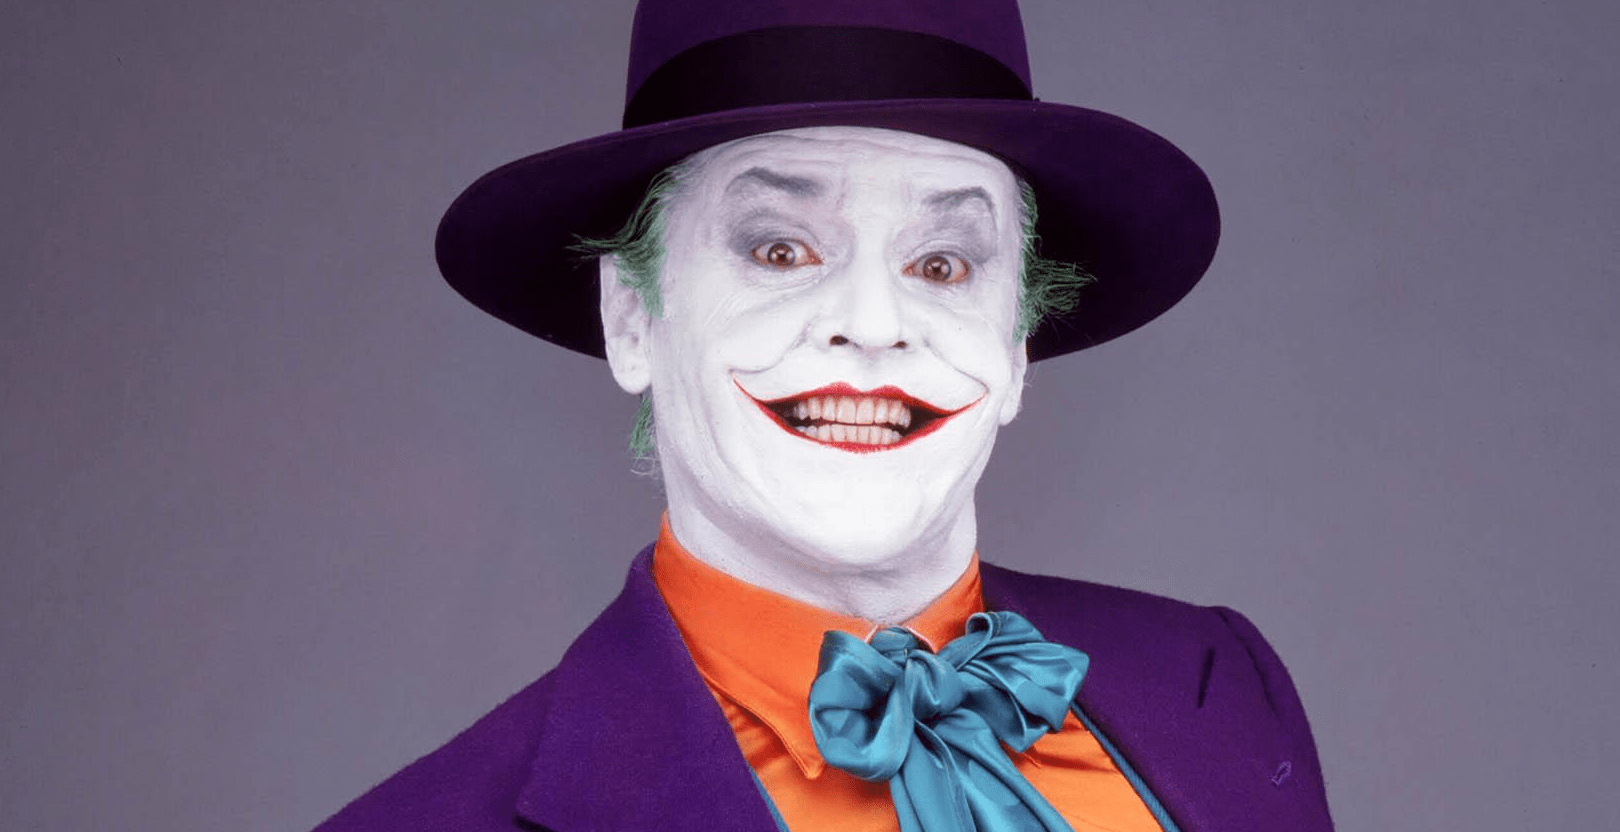 Rumor: Warner Bros. Wants DiCaprio For Joker Origin Movie